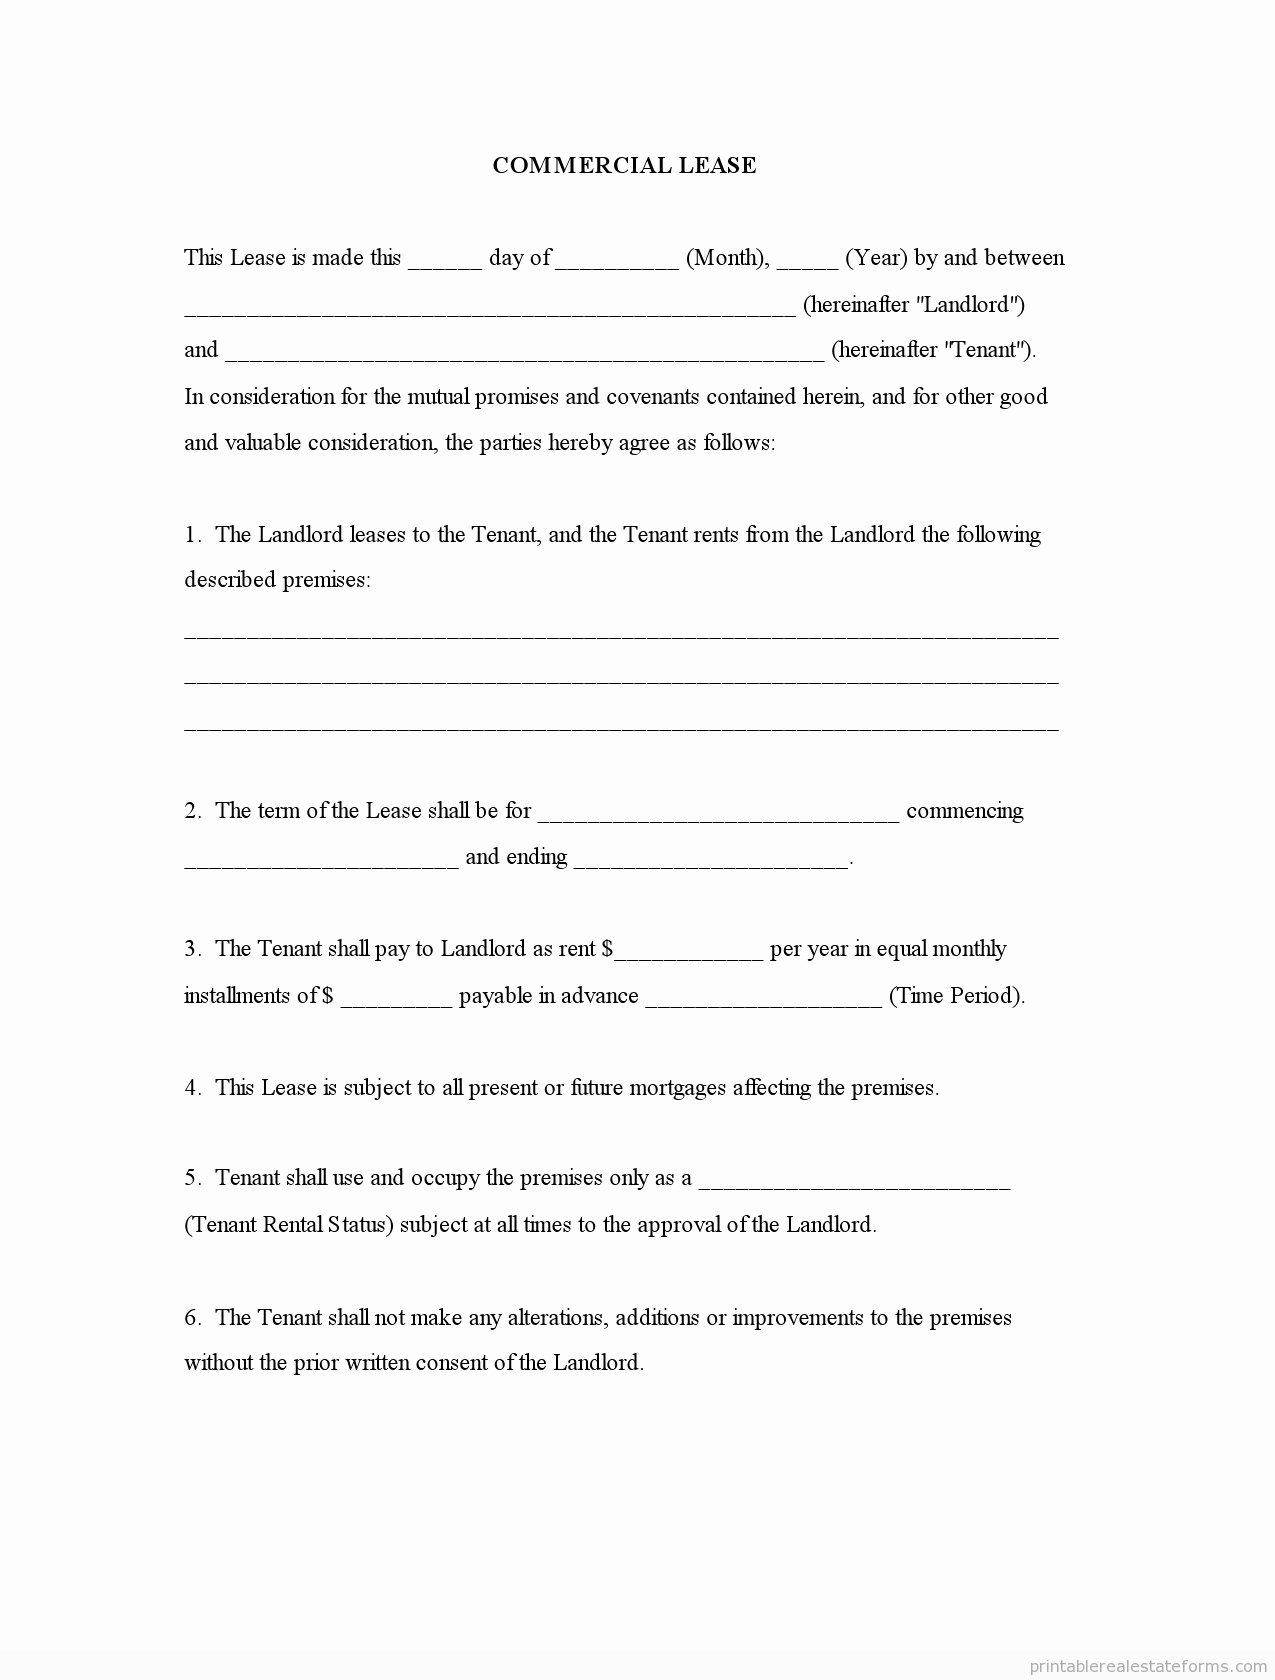 Free Printable Commercial Lease Agreement Luxury Free Mercial Lease Agreement forms to Print Template